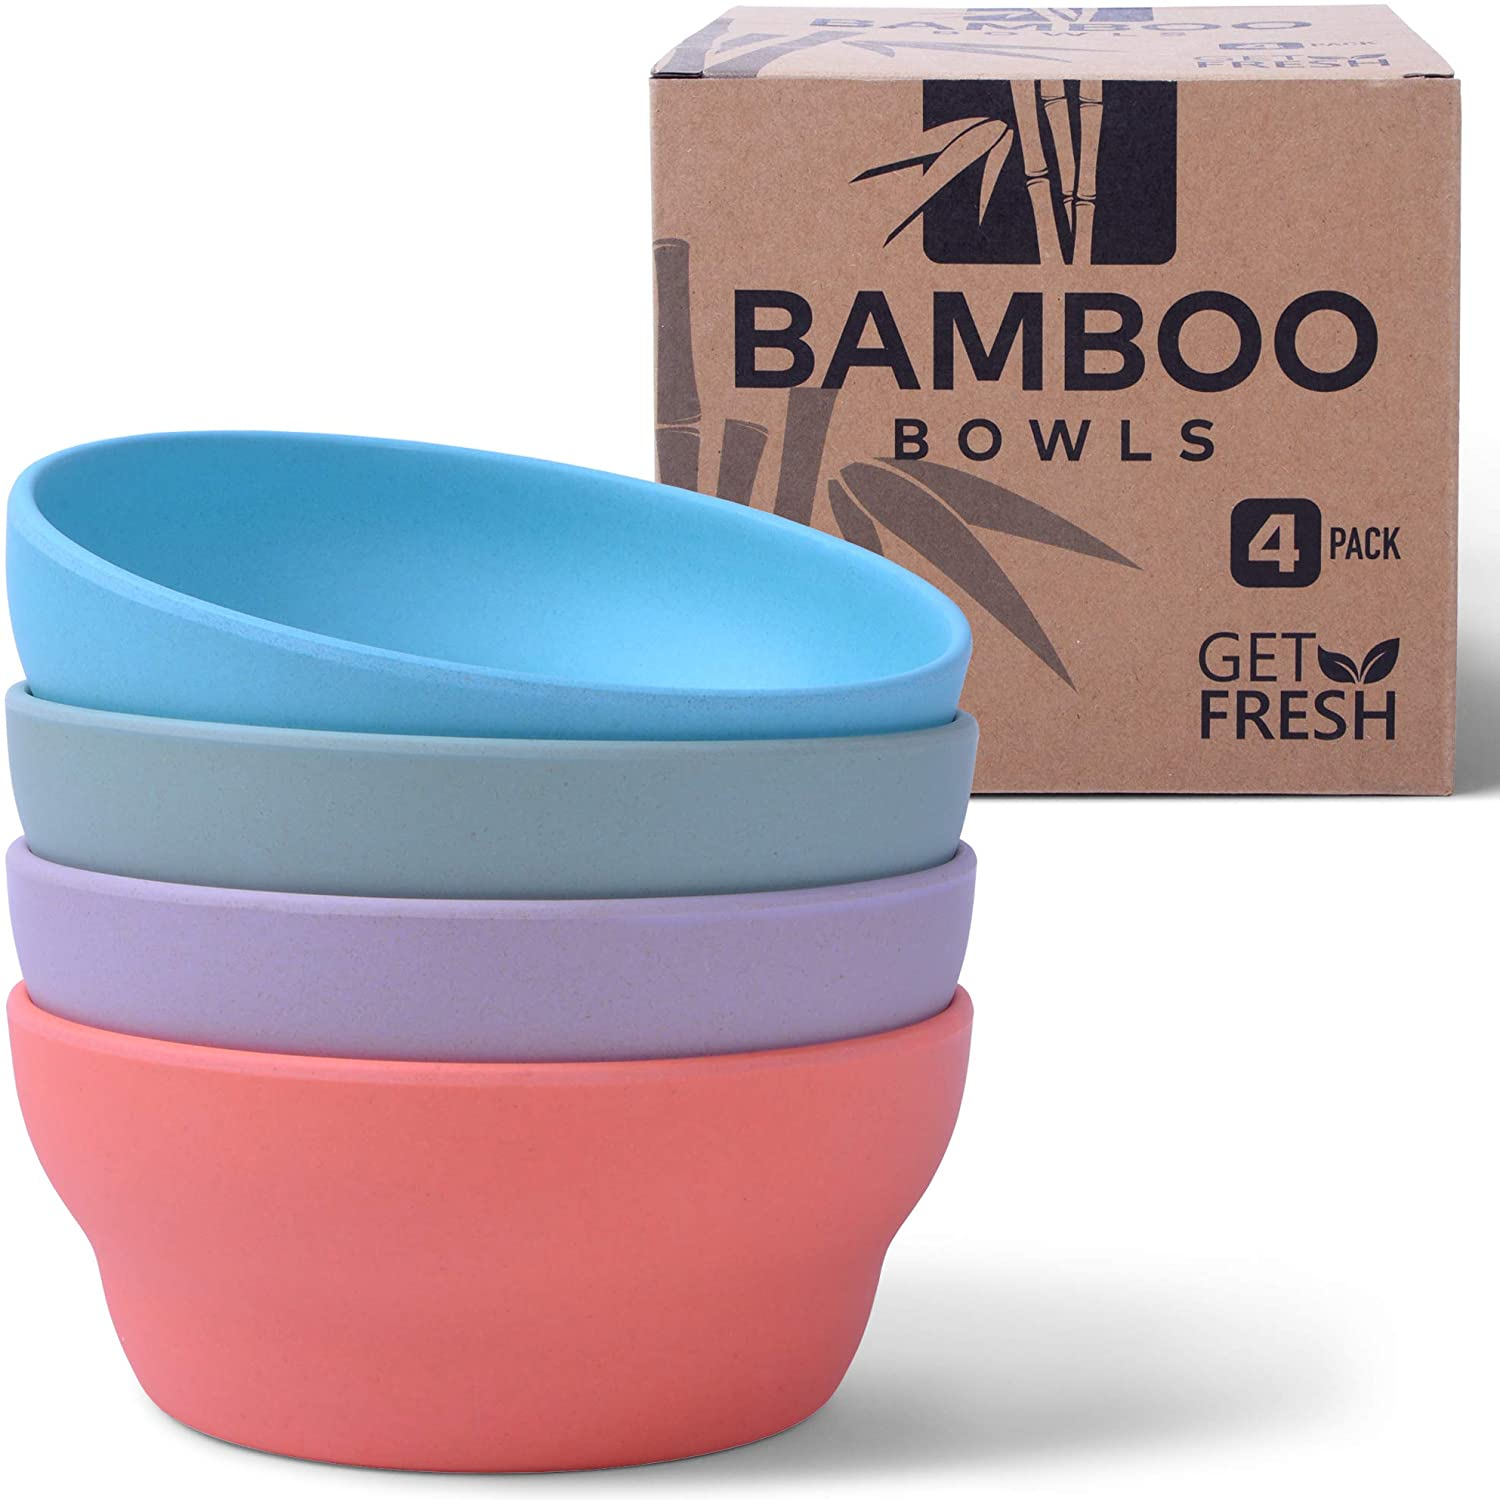 Adult-sized bamboo bowls